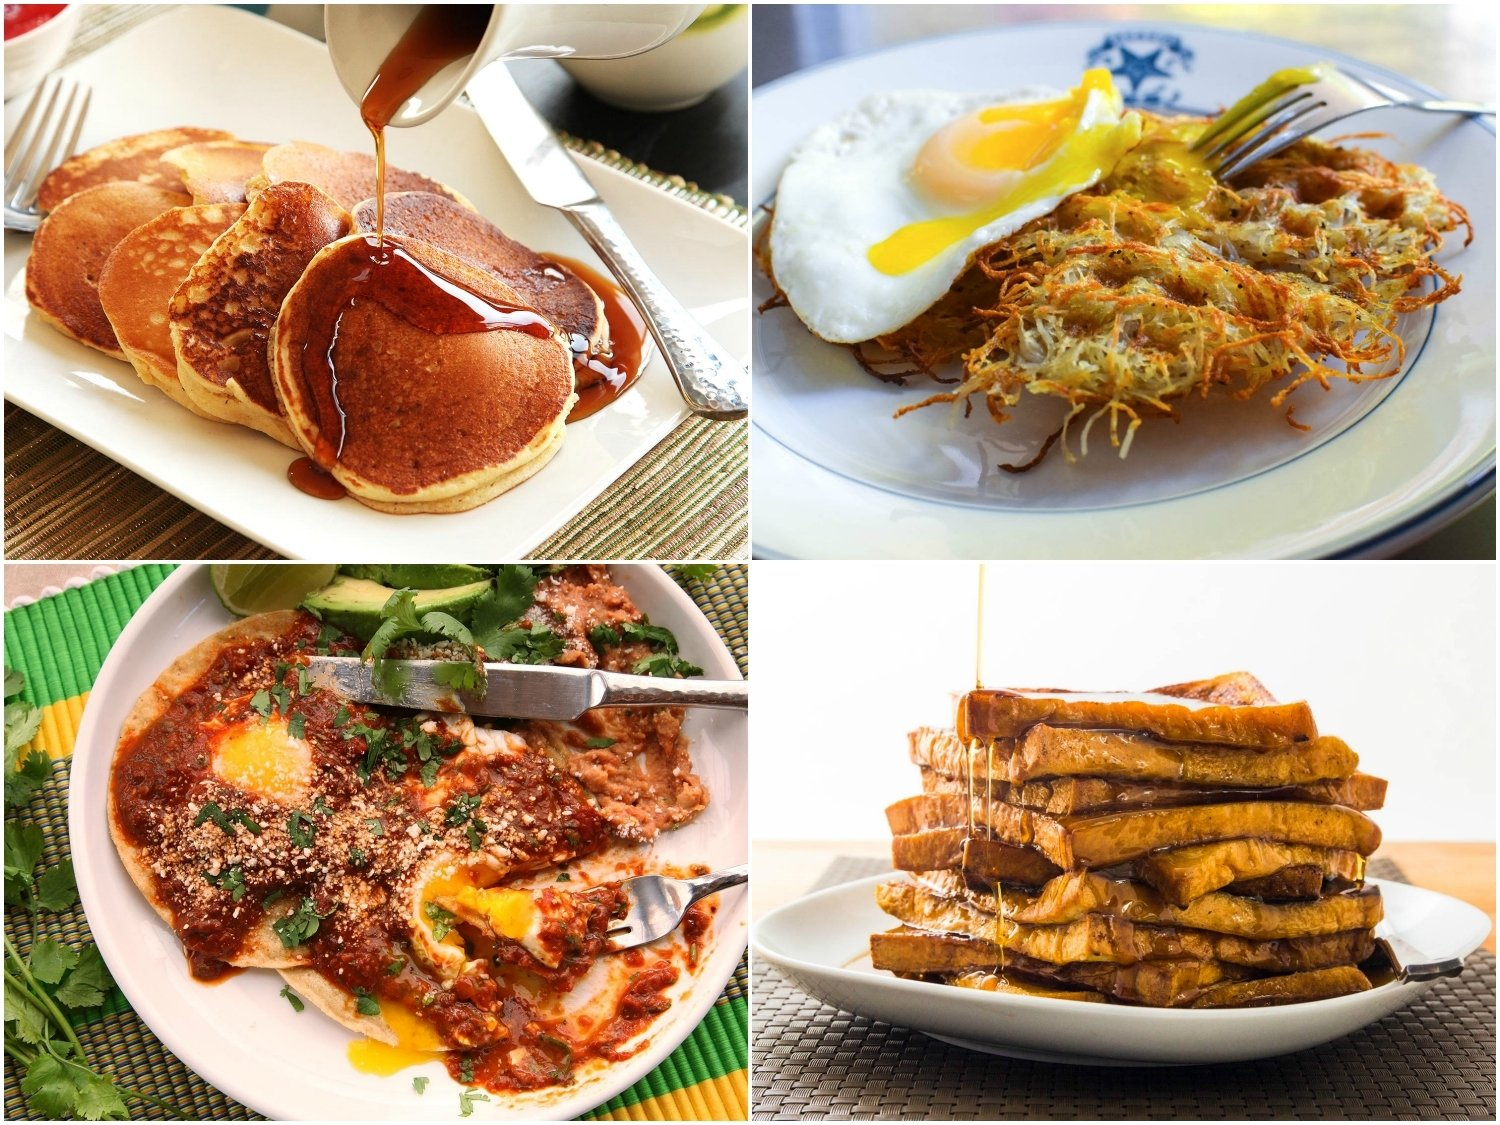 10 Best Breakfast Ideas For A Large Group 17 easy breakfasts to feed a crowd serious eats 7 2020